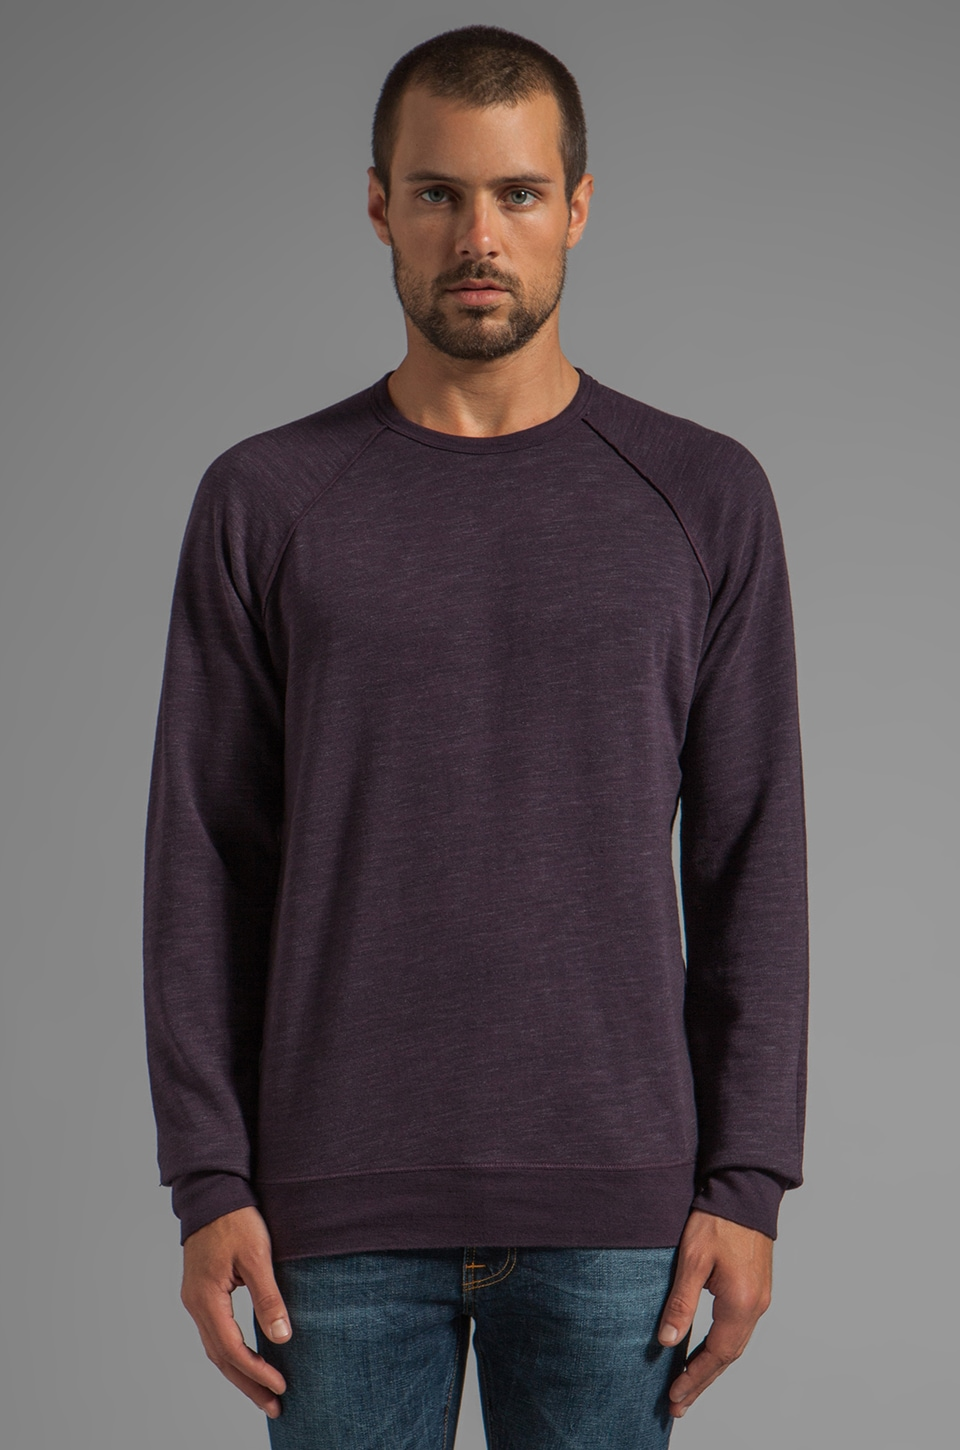 Velvet by Graham & Spencer Anson Marble Fleece Pullover in Eggplant